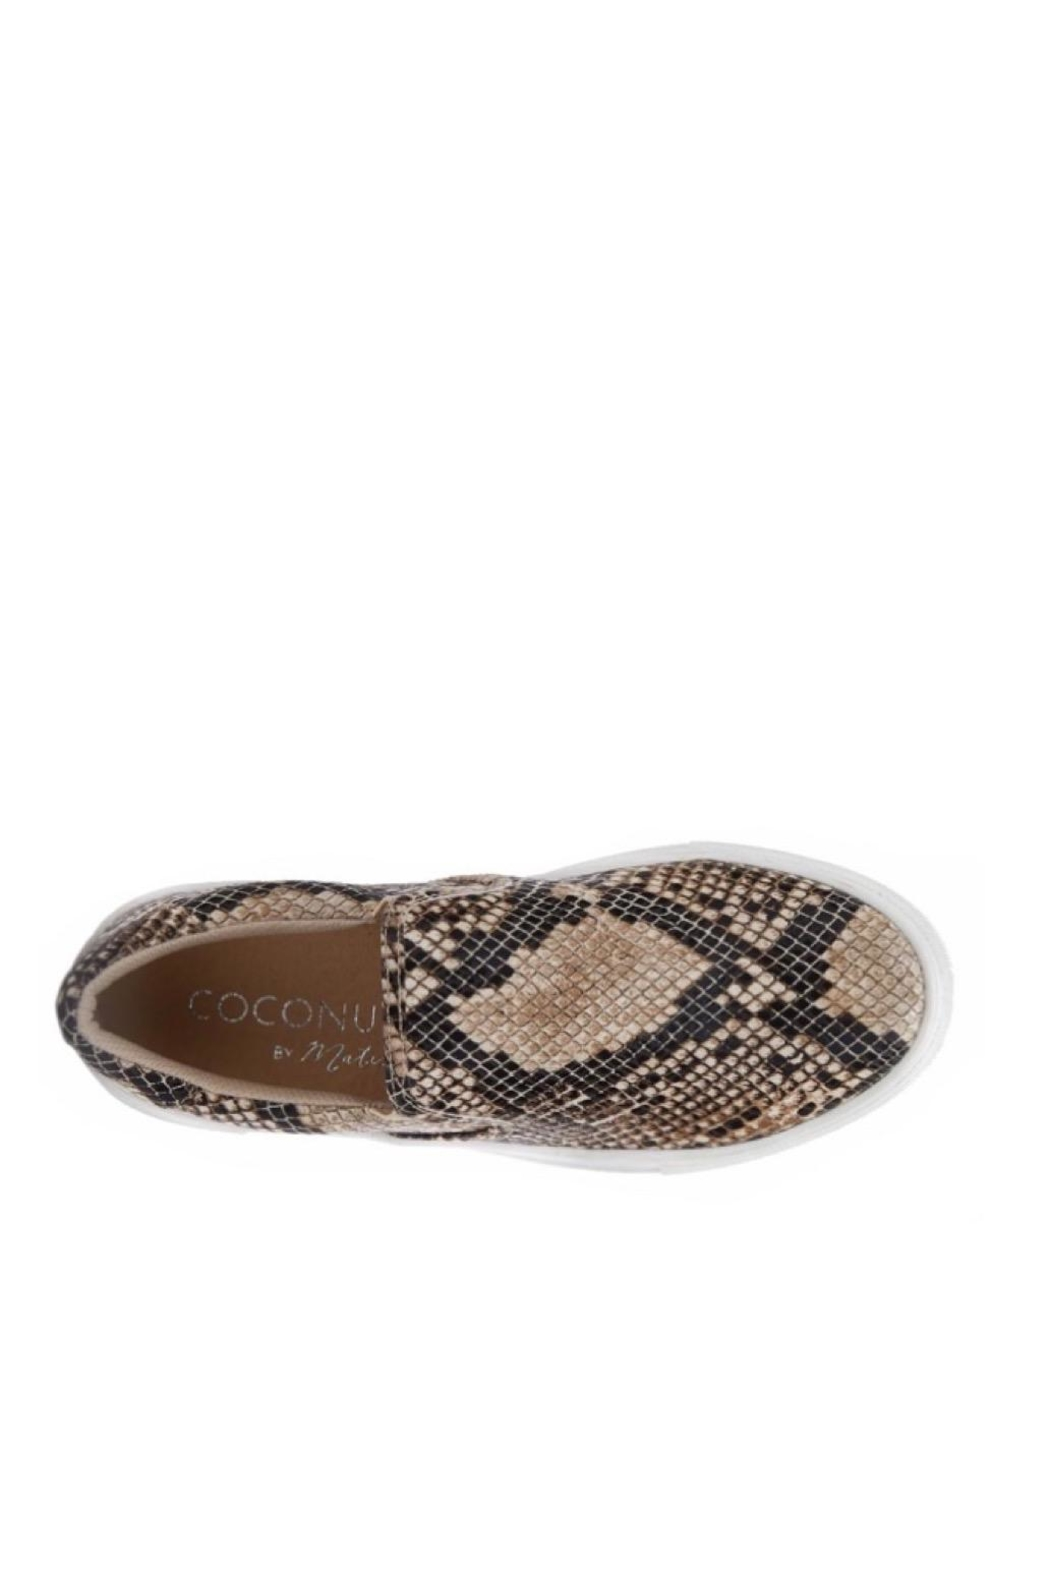 Coconuts by Matisse Snake Sneaker - Front Full Image